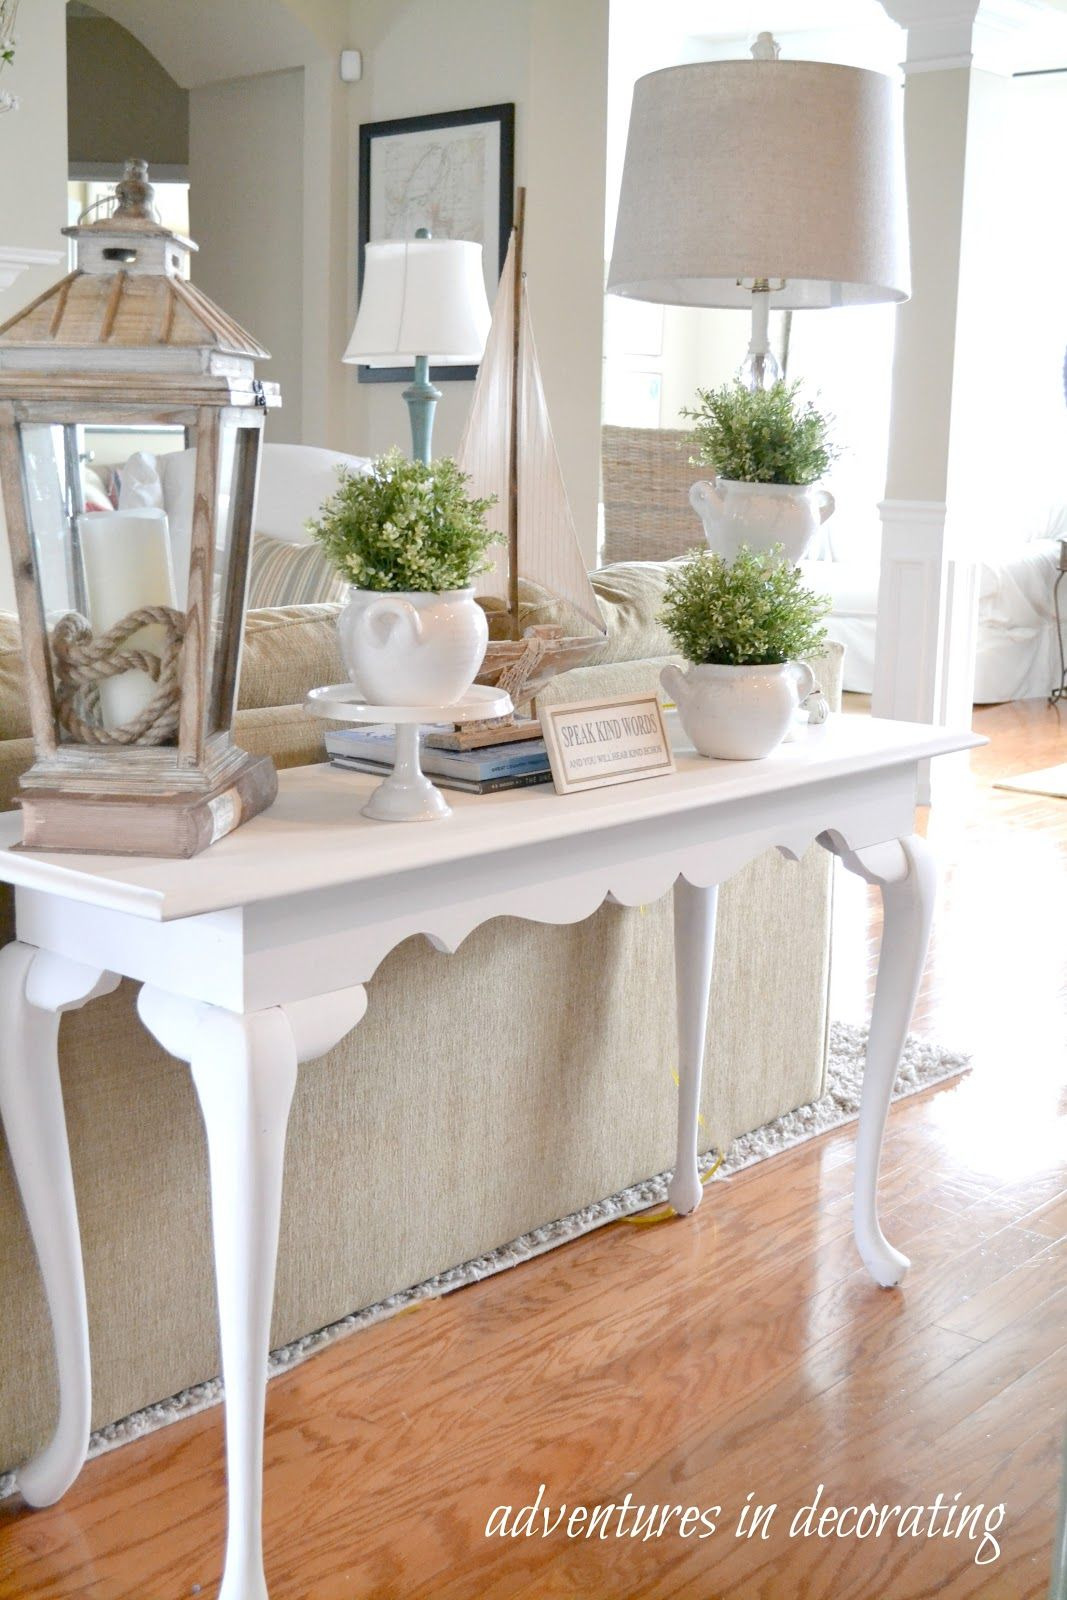 Decorating Console Table Ideas Adventures In Decorating Do You Have Rules Good Instructions